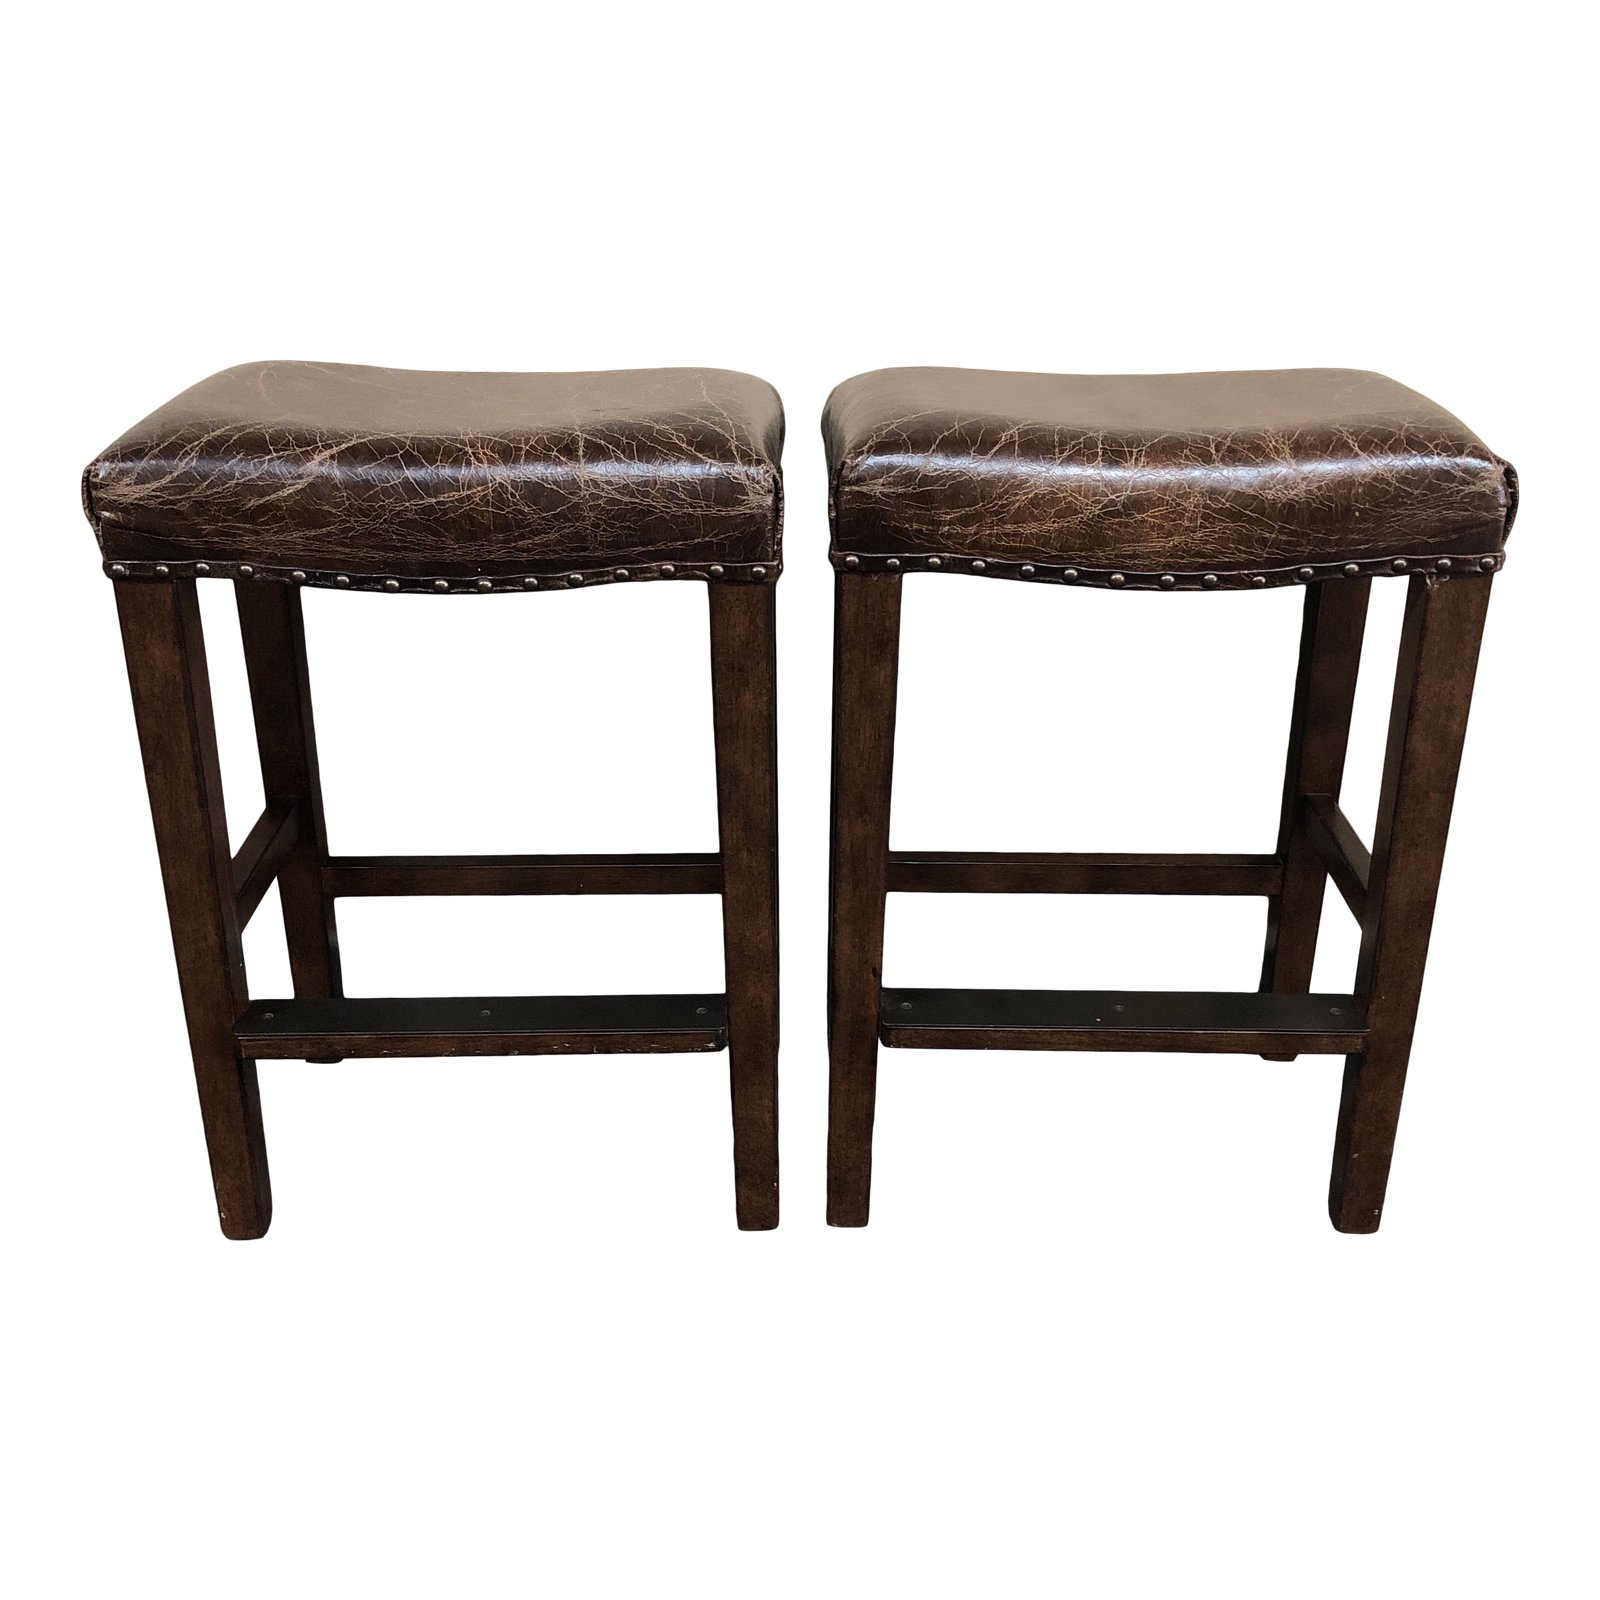 Pleasant Pair Of Manchester Leather Counter Stools By Pottery Barn Pdpeps Interior Chair Design Pdpepsorg